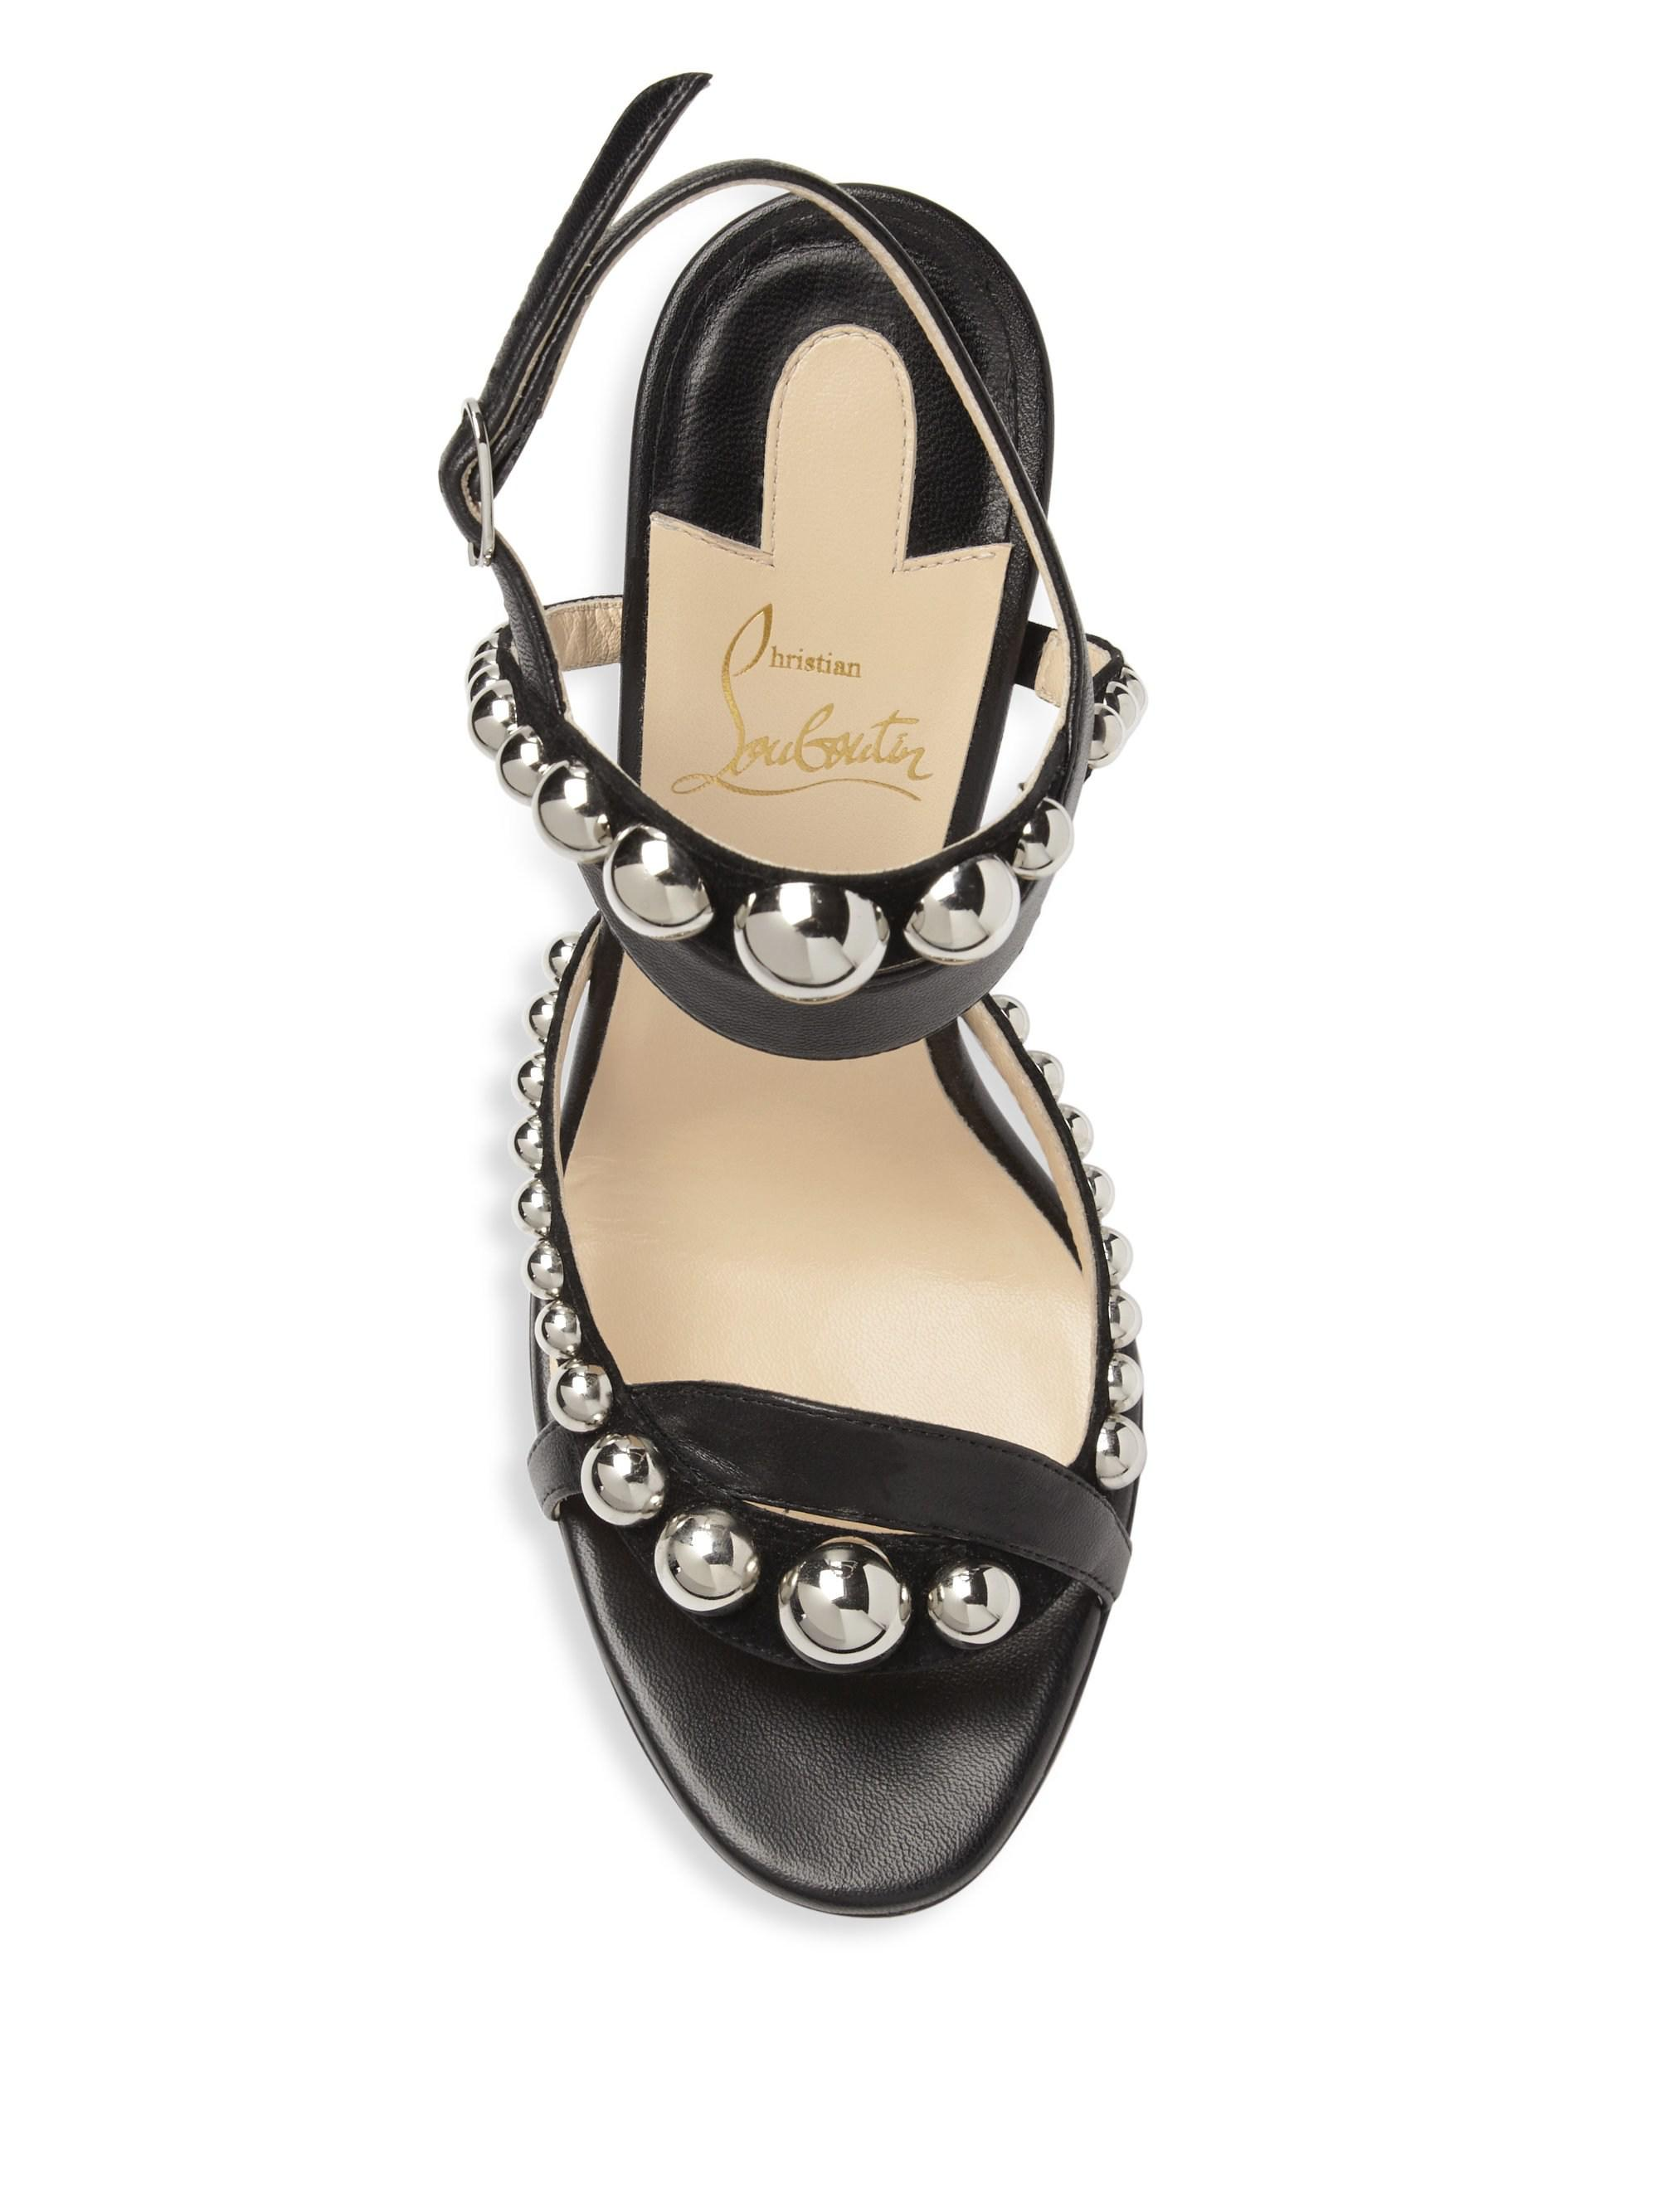 3af63c4f1336 Christian Louboutin Galleria 100 Leather Stud Sandals in Black - Lyst